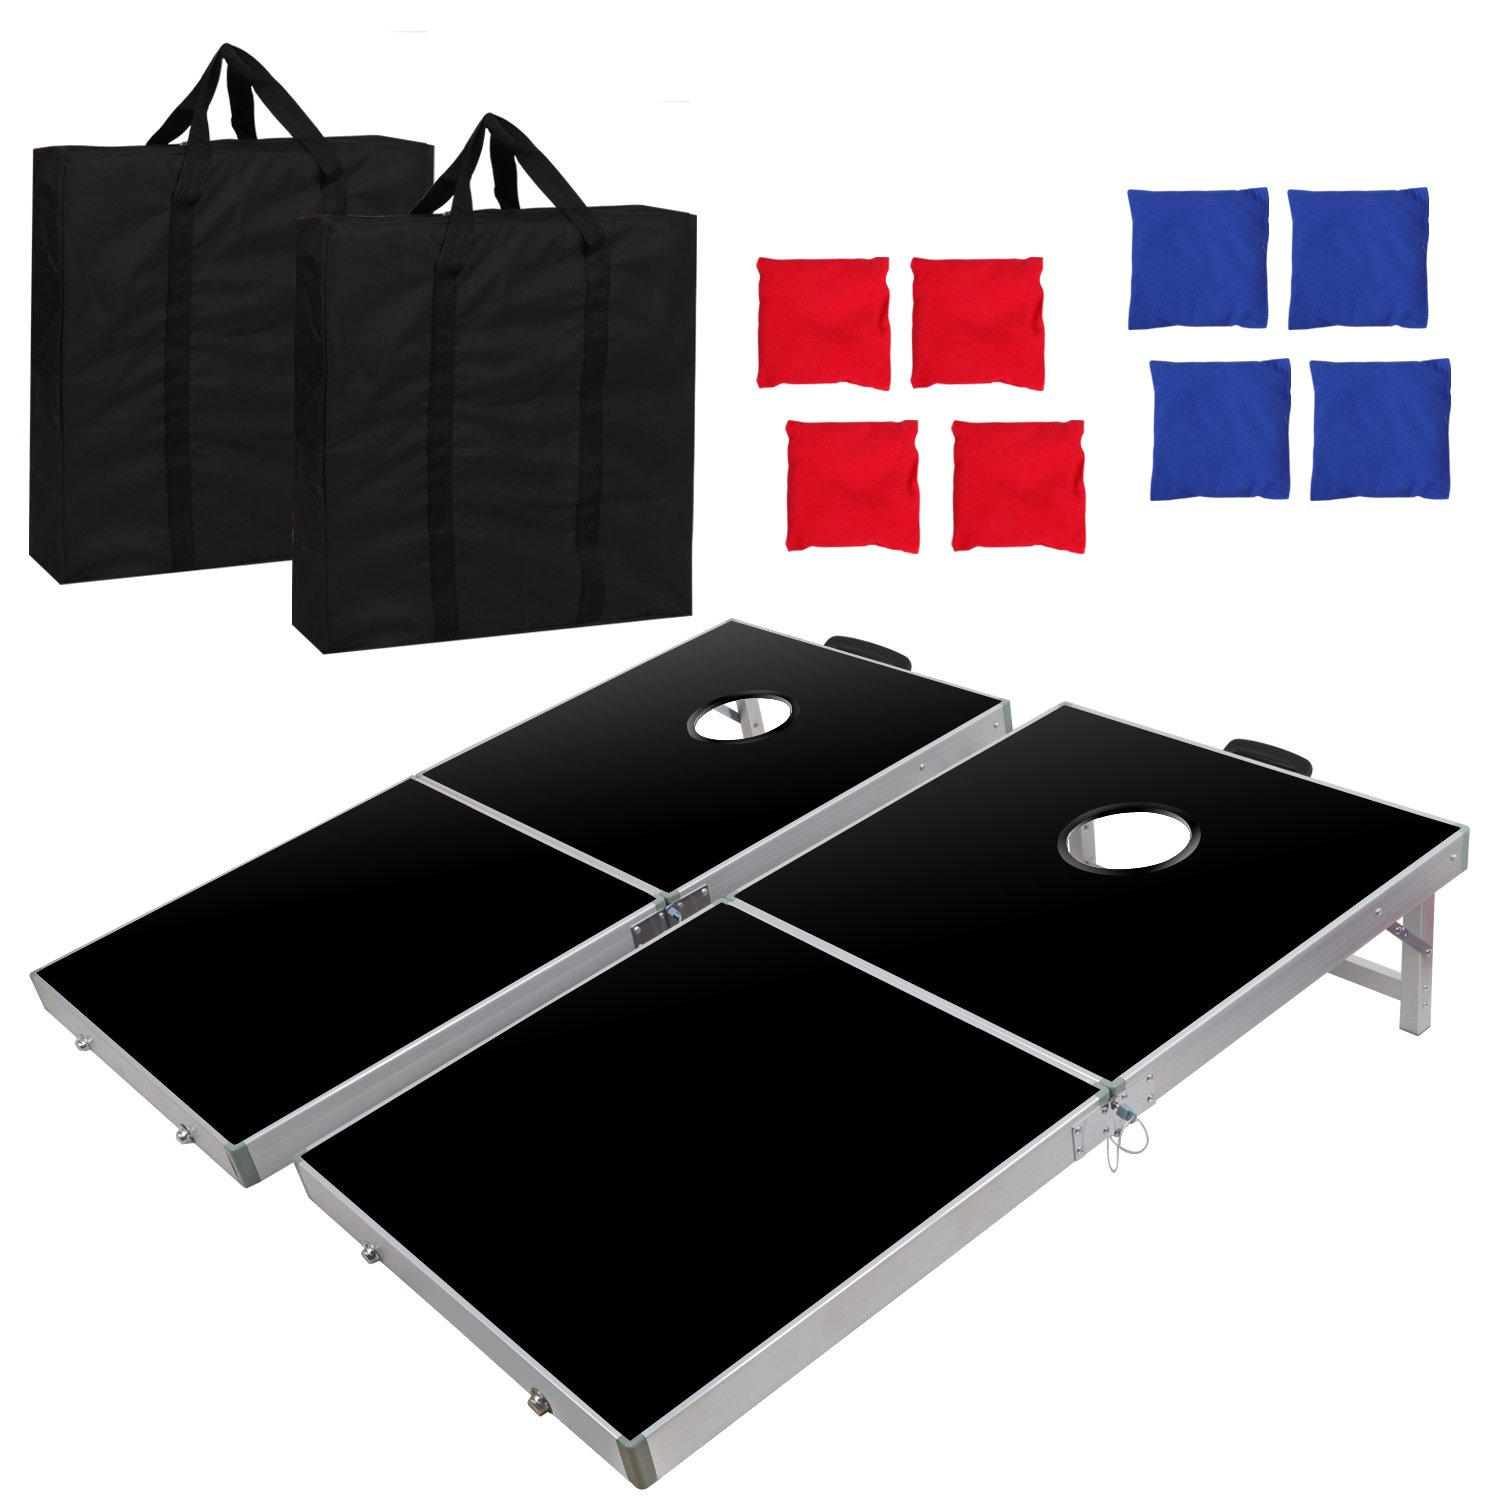 Smartxchoices Folding Bean Bag Cornhole Toss Game Set 8 Bean Bags Aluminum Frame, Travel Carrying Case Game Rulers (4ft x 2ft)